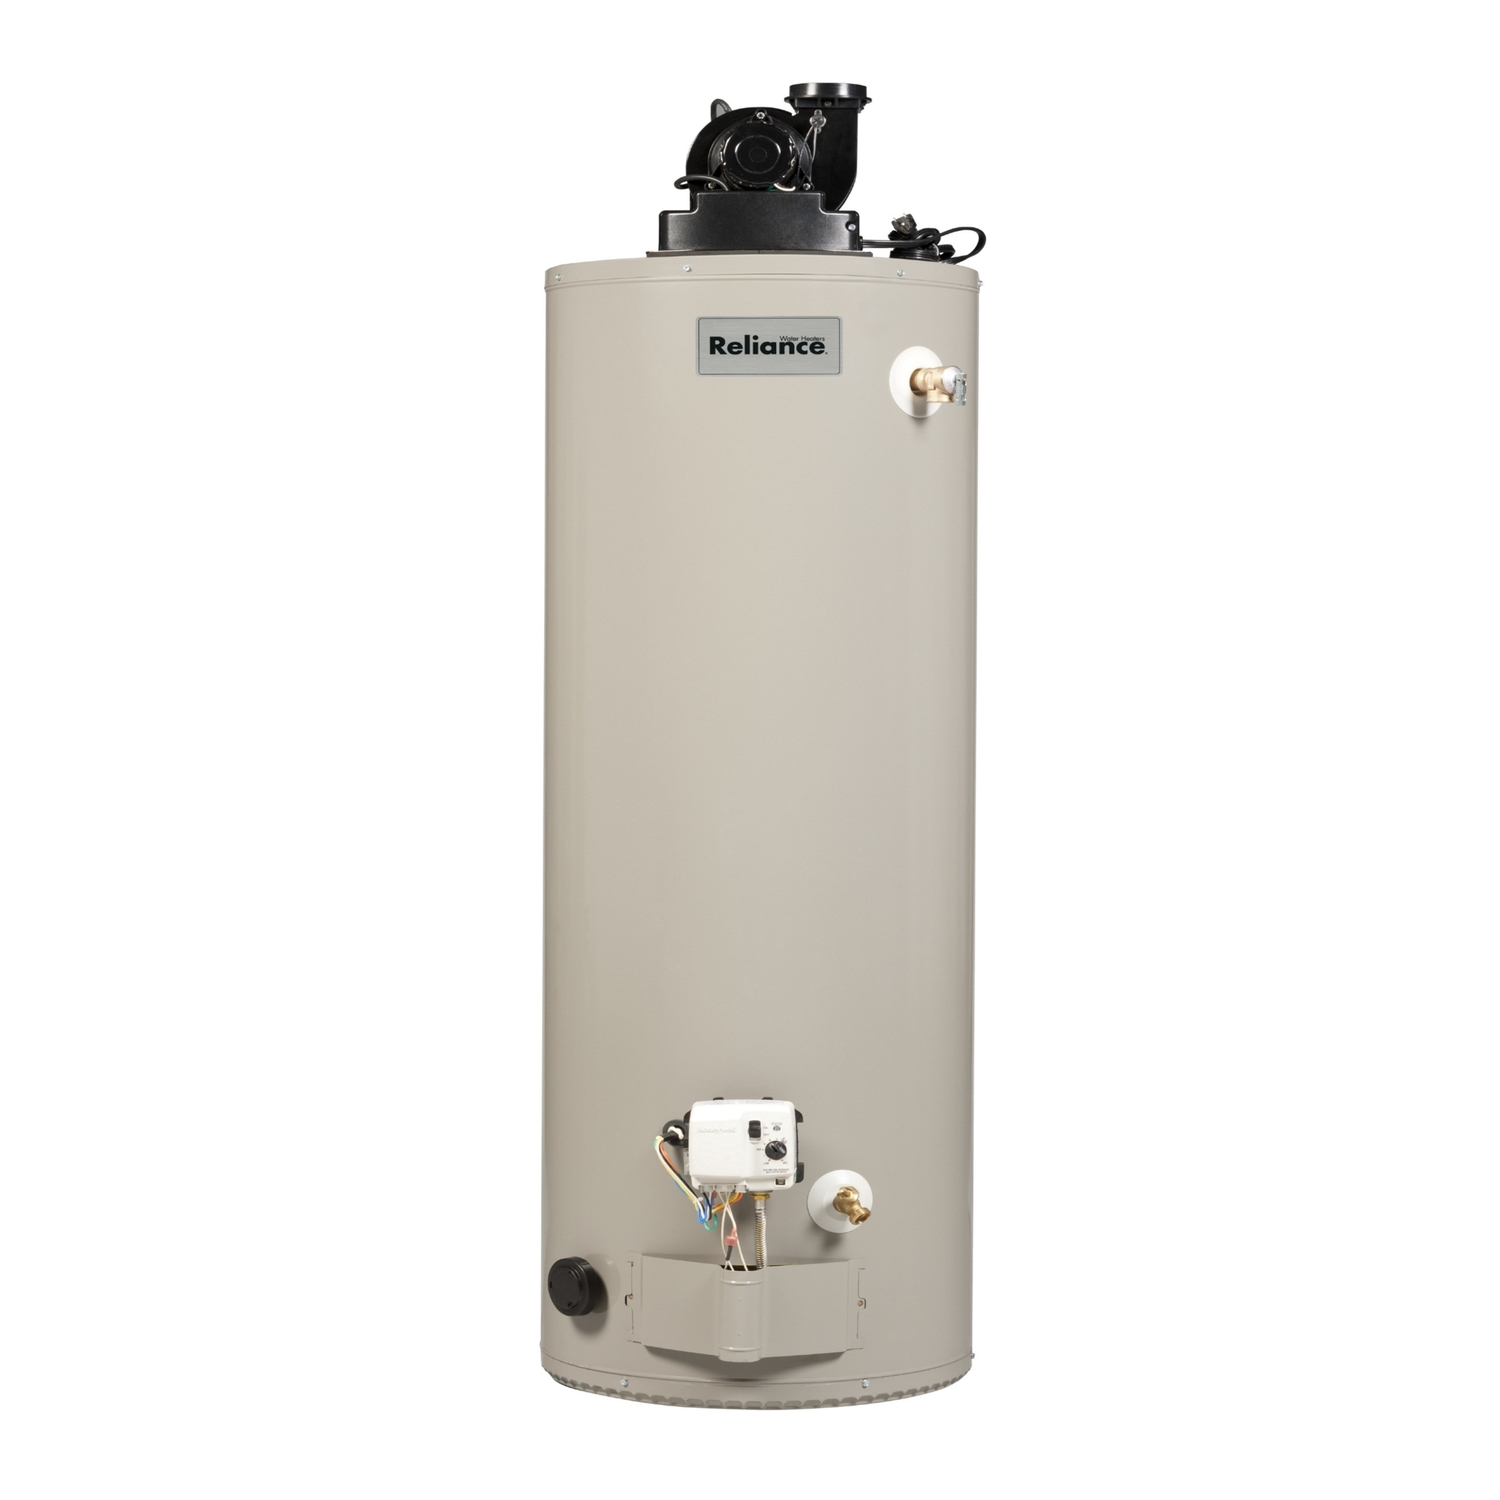 Reliance  Water Heater  Natural Gas  50 gal. 60-1/8 in. H x 24 in. L x 24 in. W